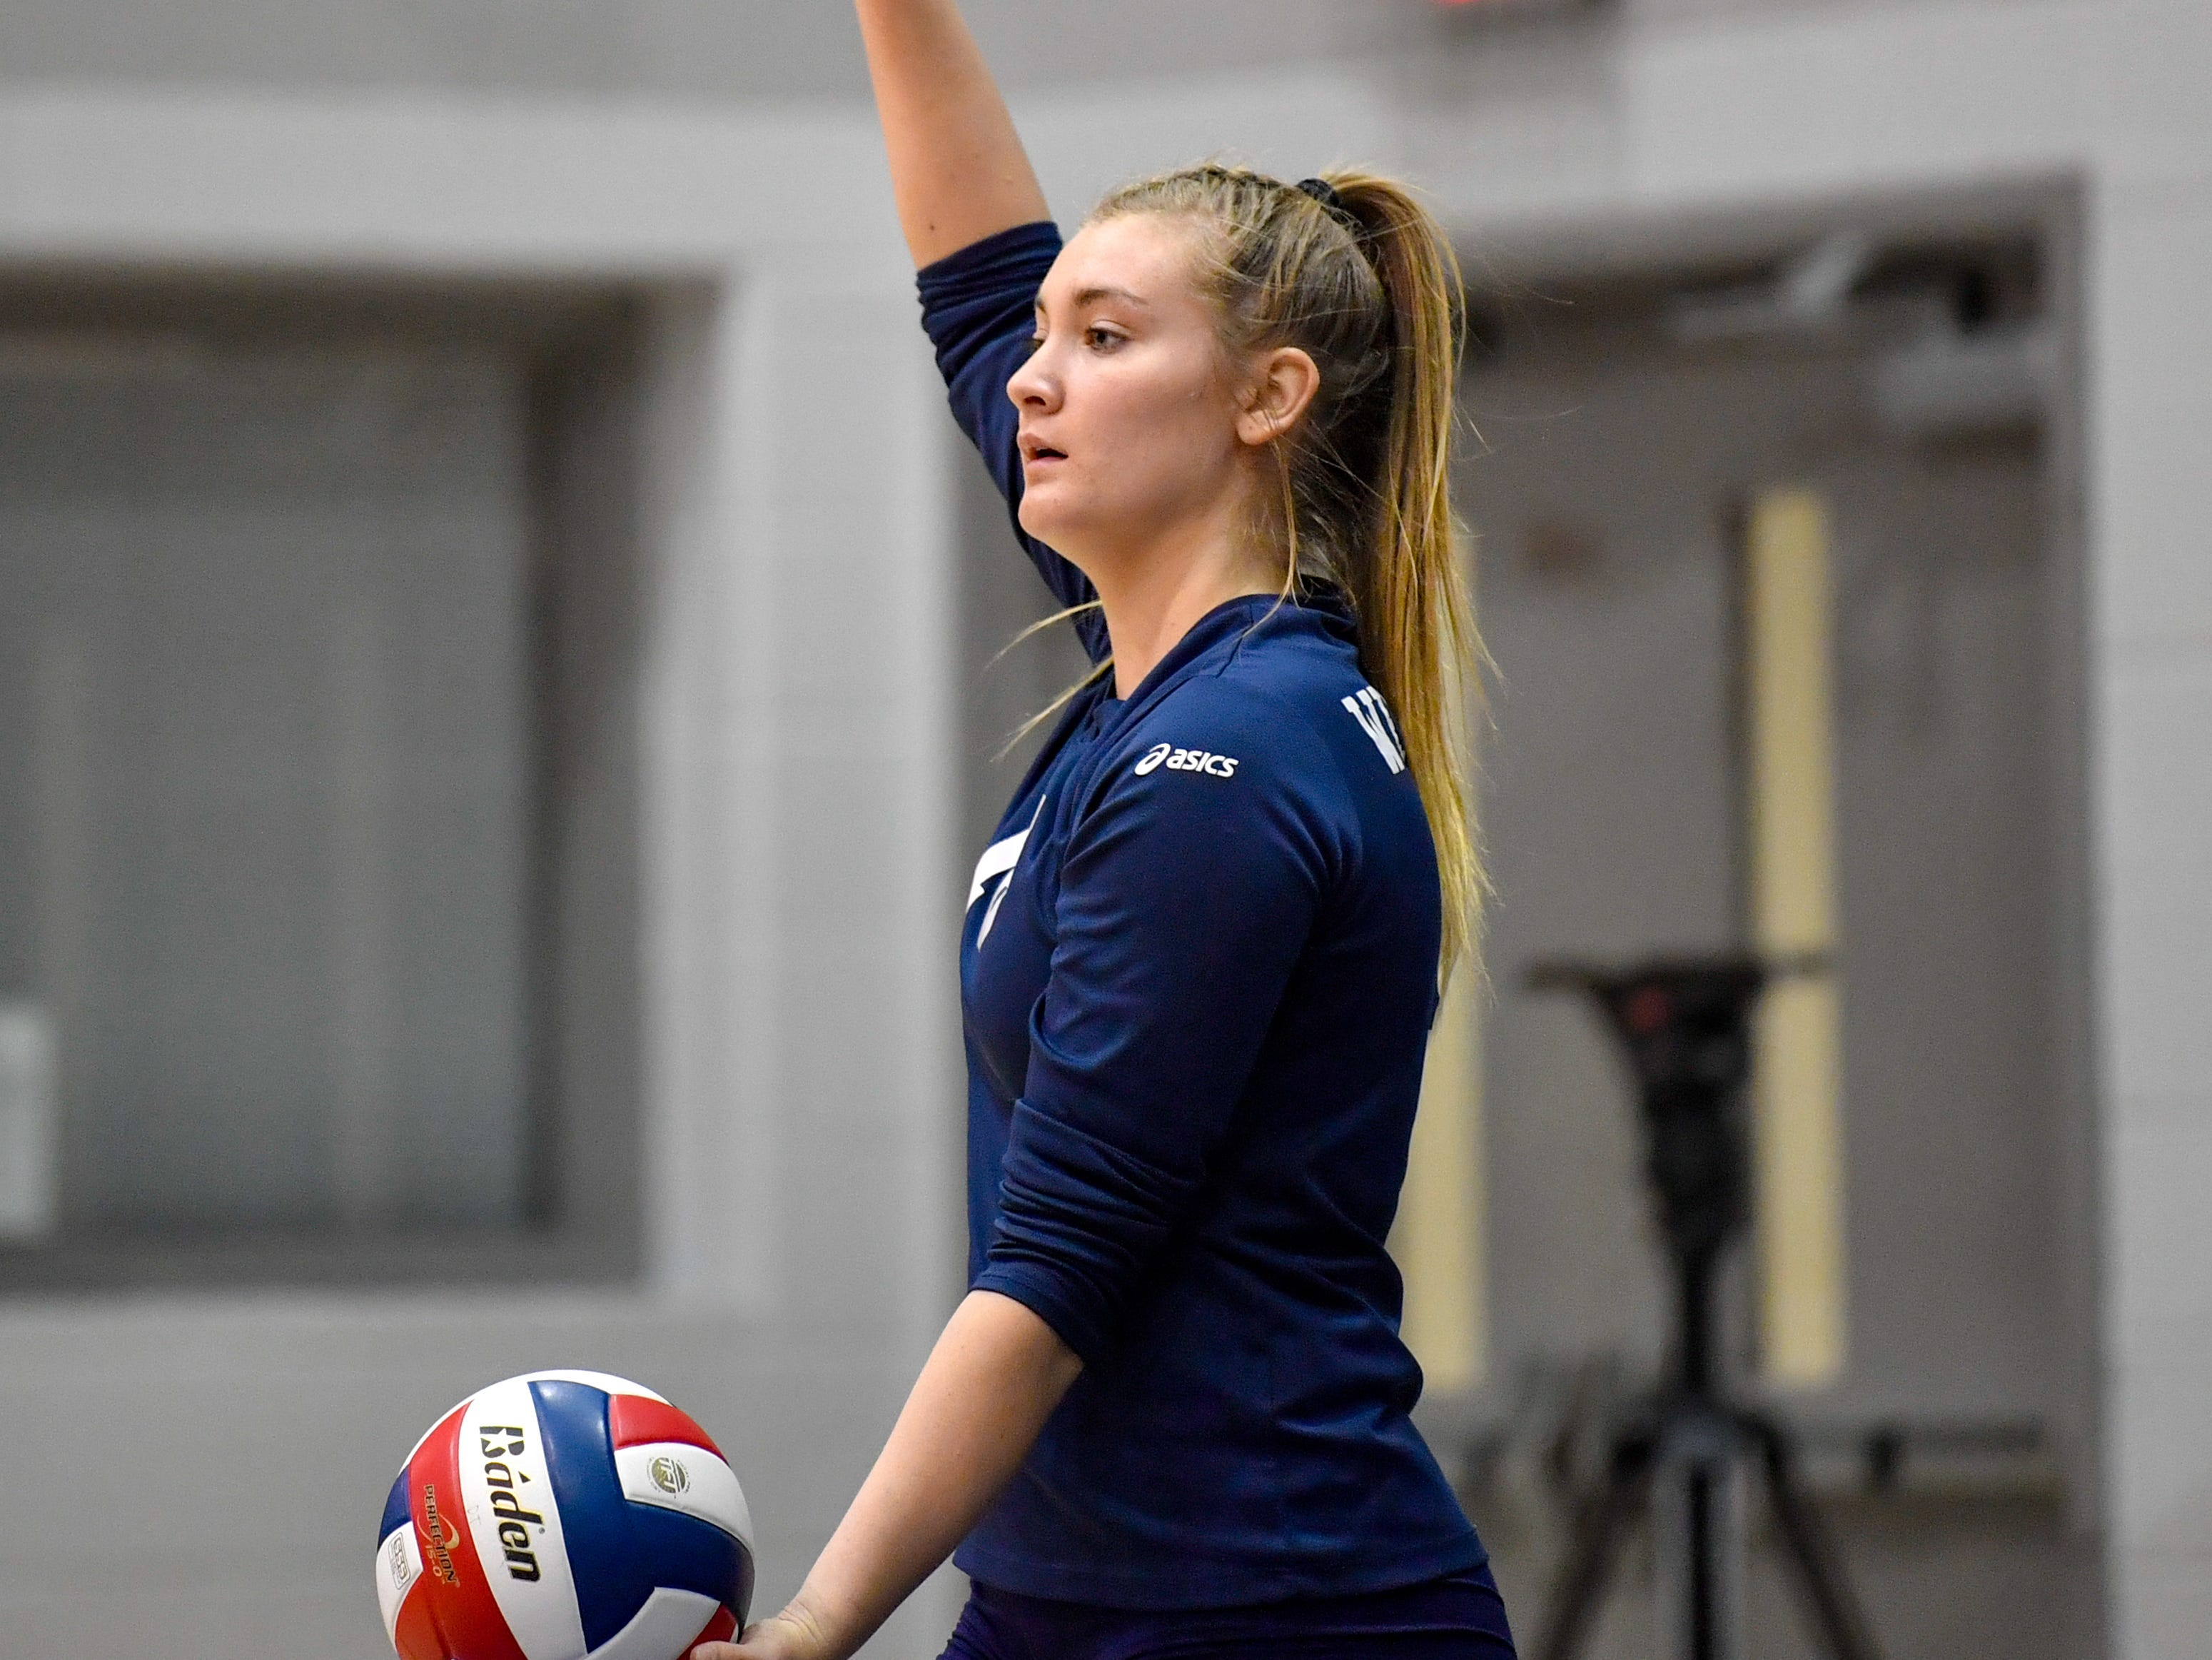 Georgianna Kahley (16) of West York decides where to serve the ball during the YAIAA league volleyball tournament semifinals between West York and Dover, Tuesday, October 23, 2018. The Bulldogs defeated the Eagles 3-1.